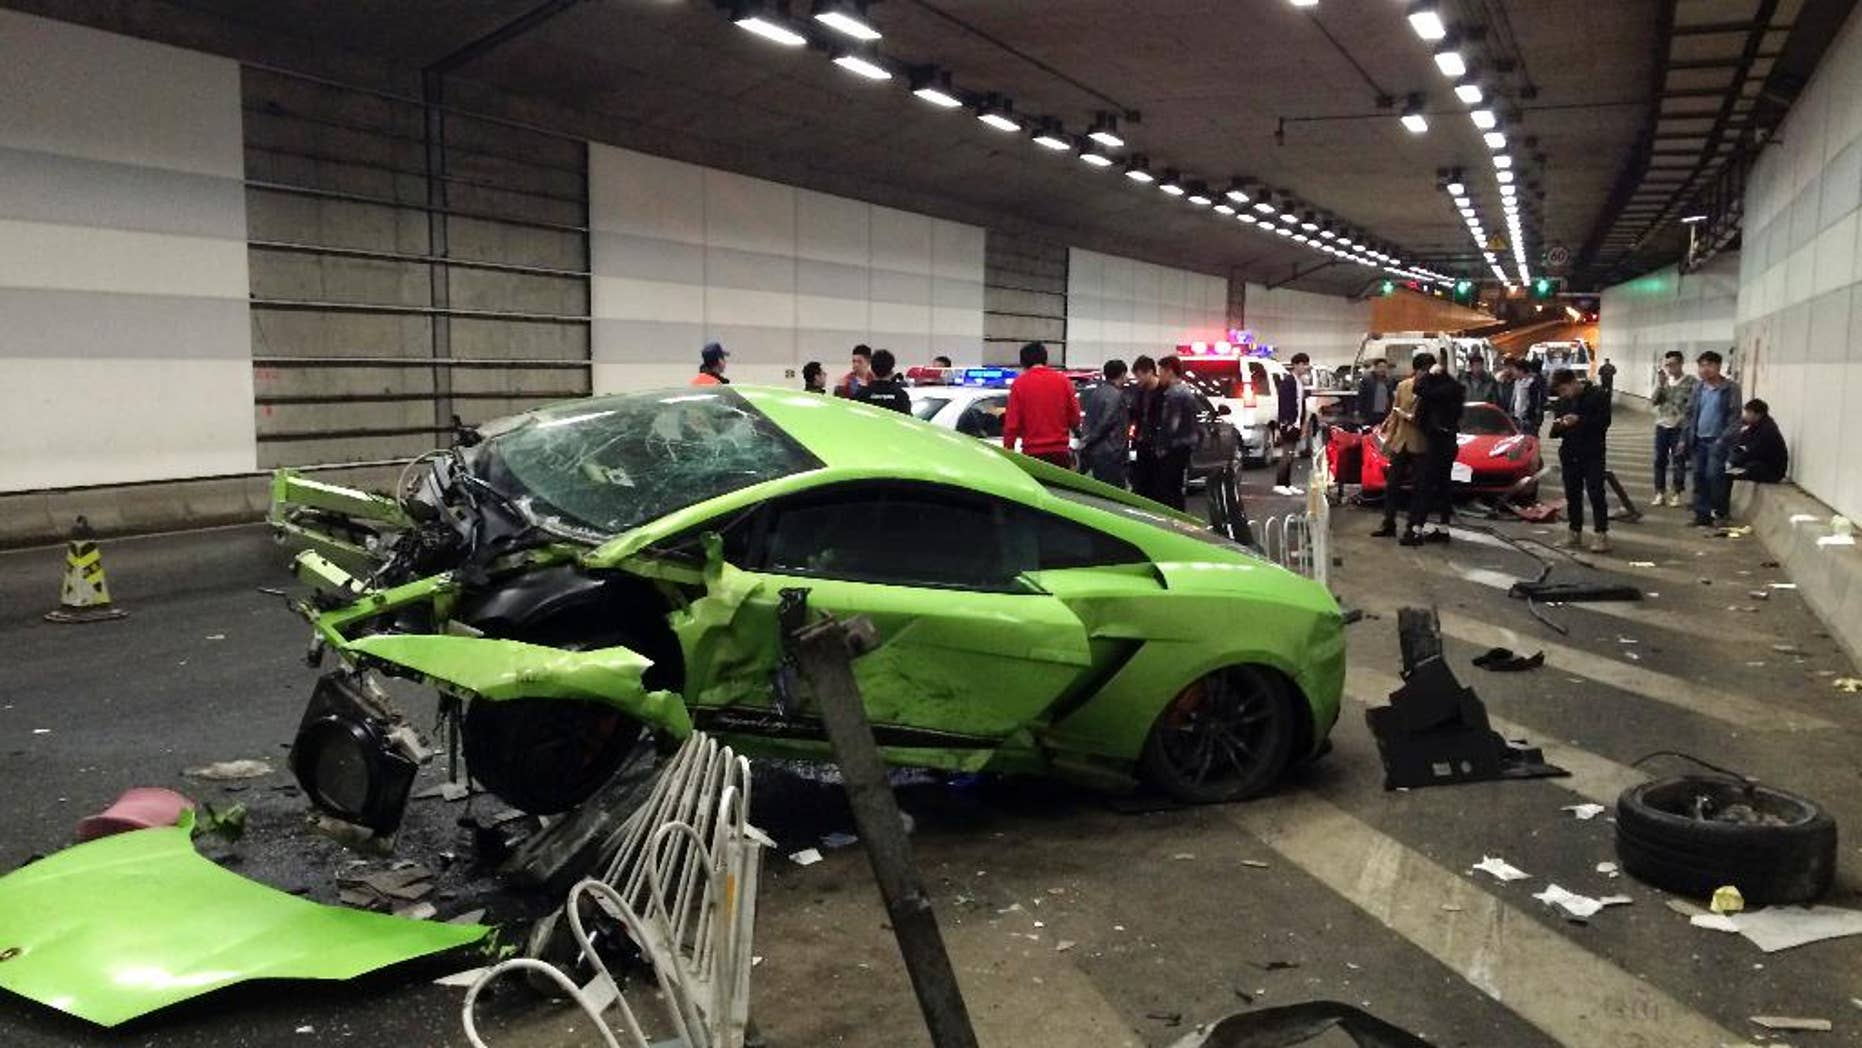 In this April 12, 2015 photo, policemen and bystanders check on a damaged Lamborghini, foreground, after it collided with a Ferrari in a tunnel in Beijing, China. A Beijing court on Thursday, May 21 sentenced two young men to up to five months in jail for dangerous driving, a month after they crashed their supercars in a late-night race through Beijing. (Chinatopix via AP) CHINA OUT